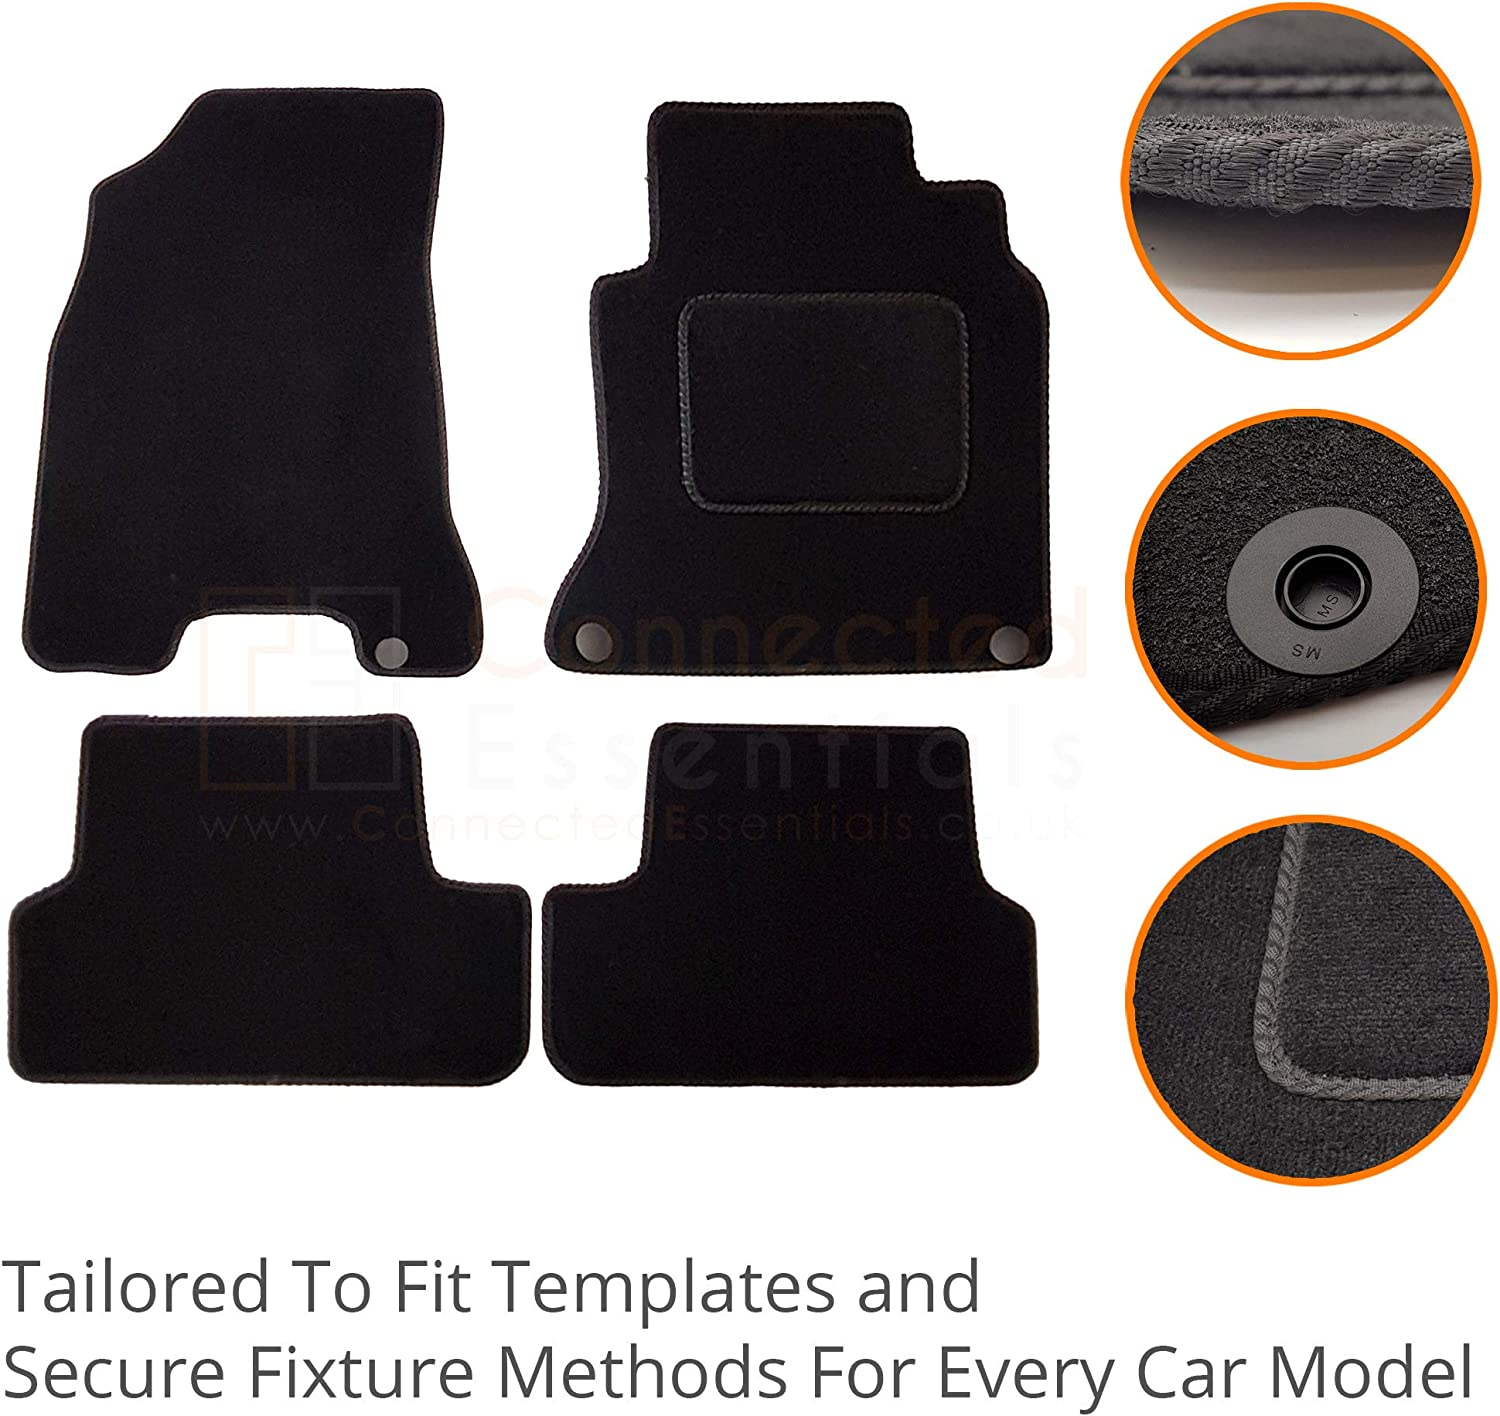 Set of 4 Connected Essentials Picanto Mk2 2011-2017 3dr /& 5dr Car Mats Prestige Black